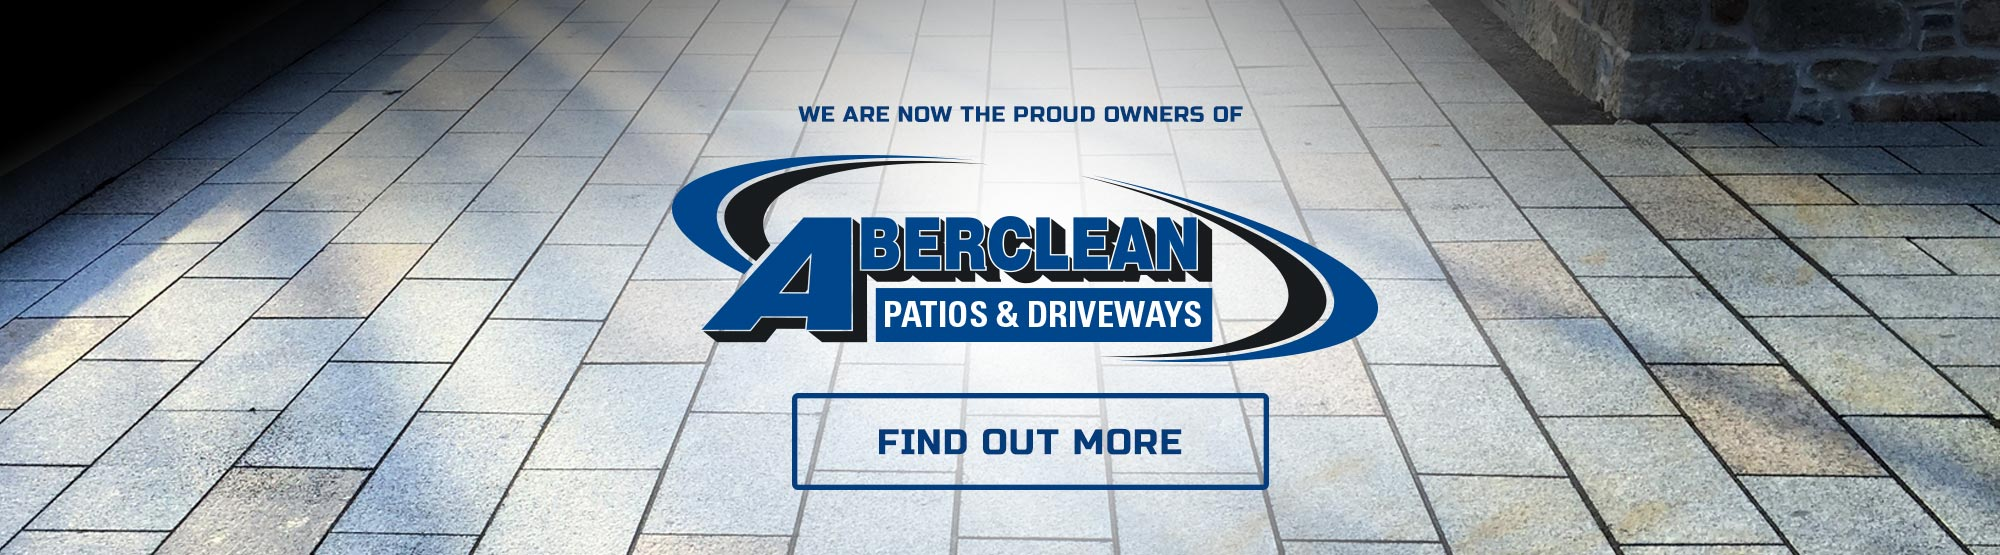 Find Out More About Aberclean Patios & Driveways